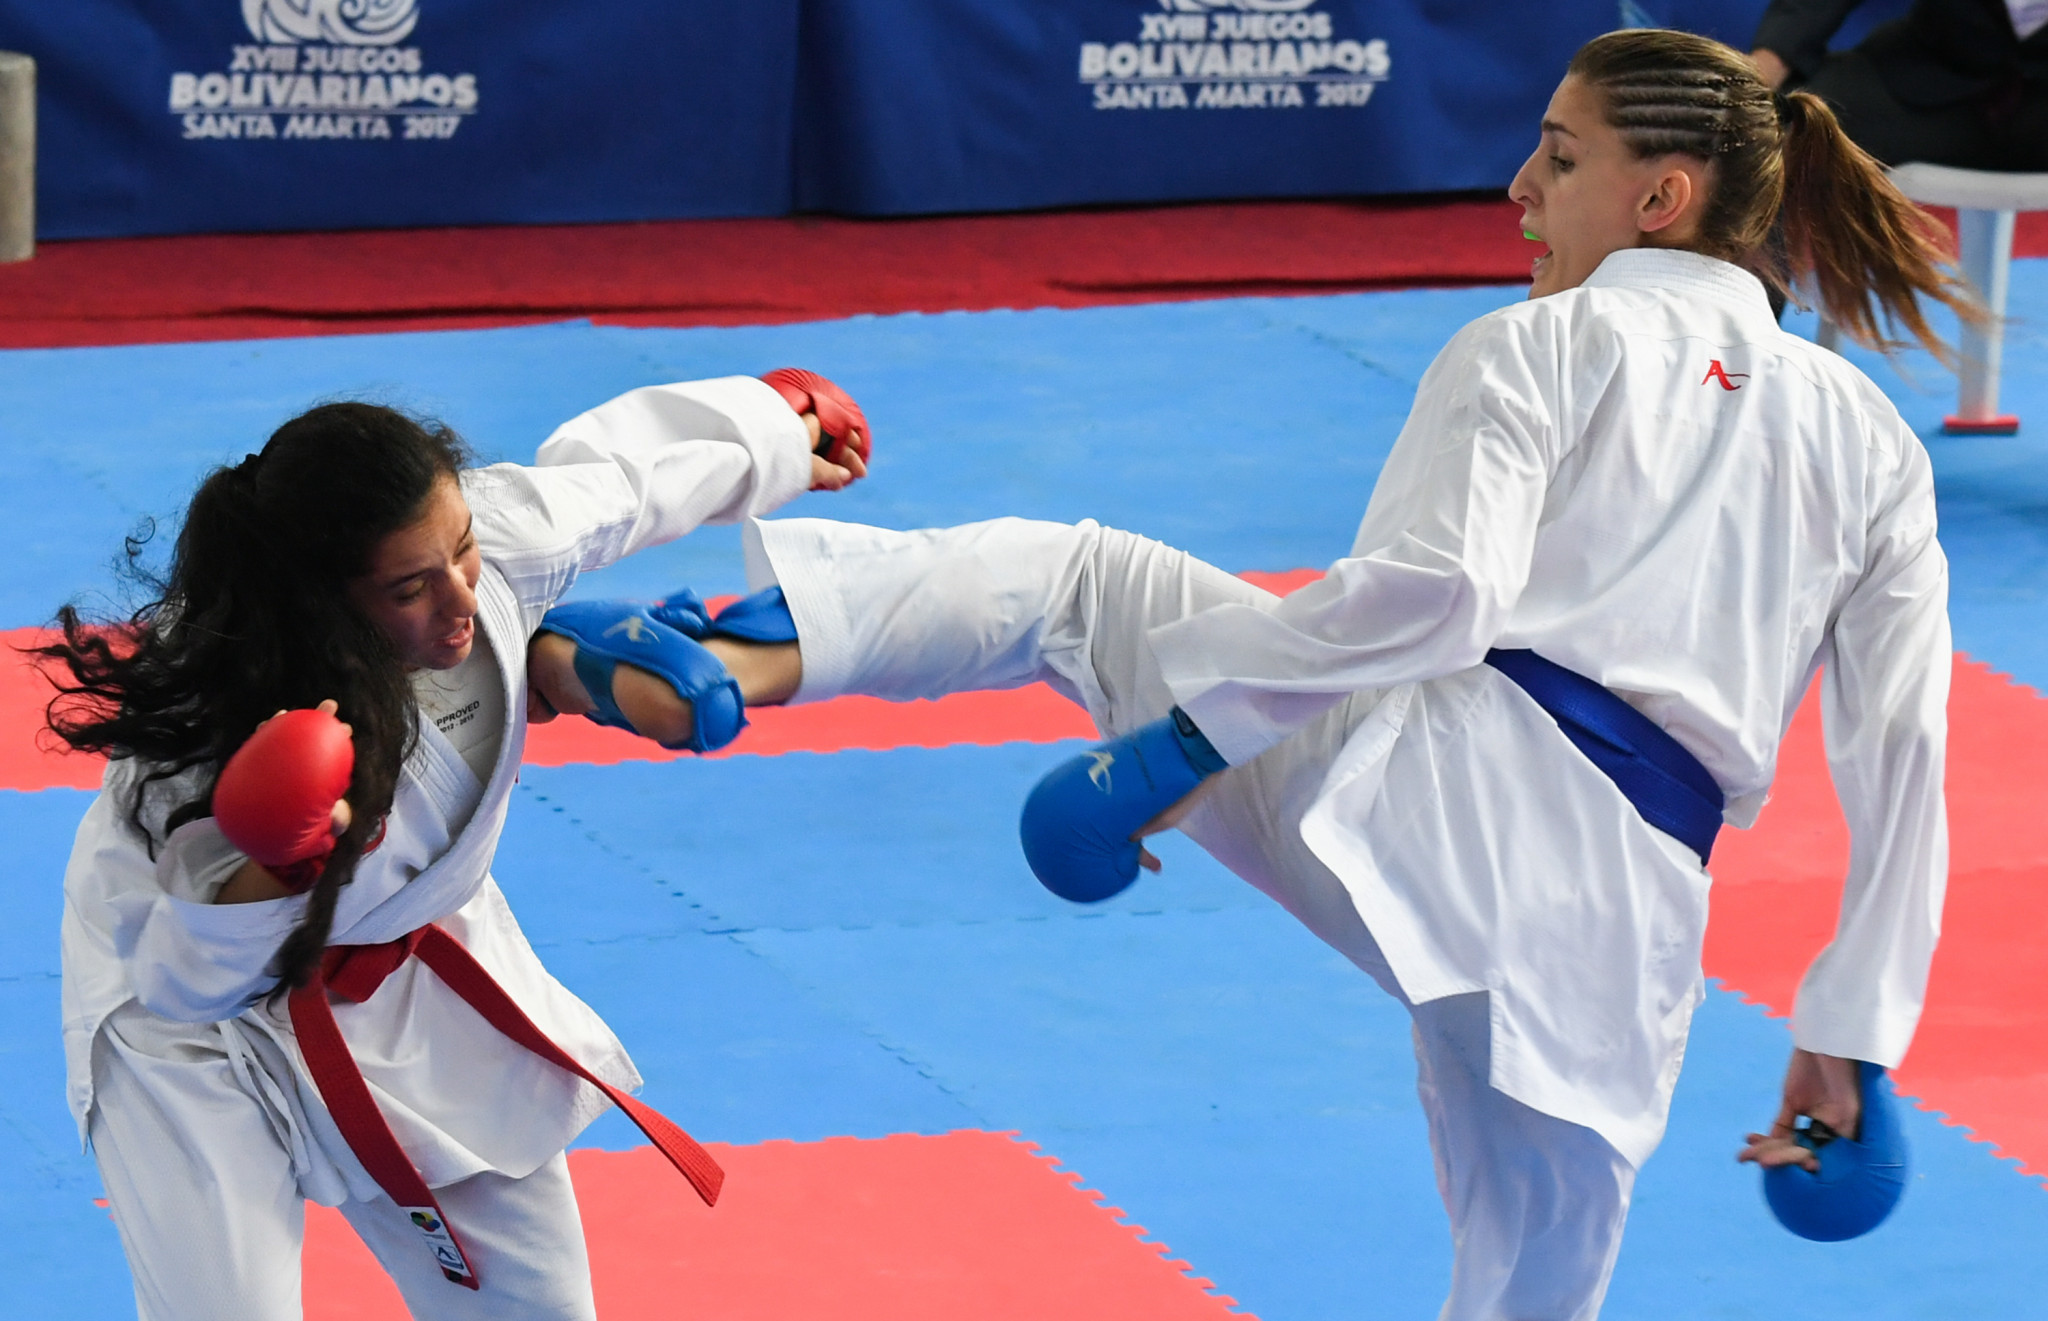 Karate is growing in the Americans prior to its Olympic debut at Tokyo 2020 ©Getty Images